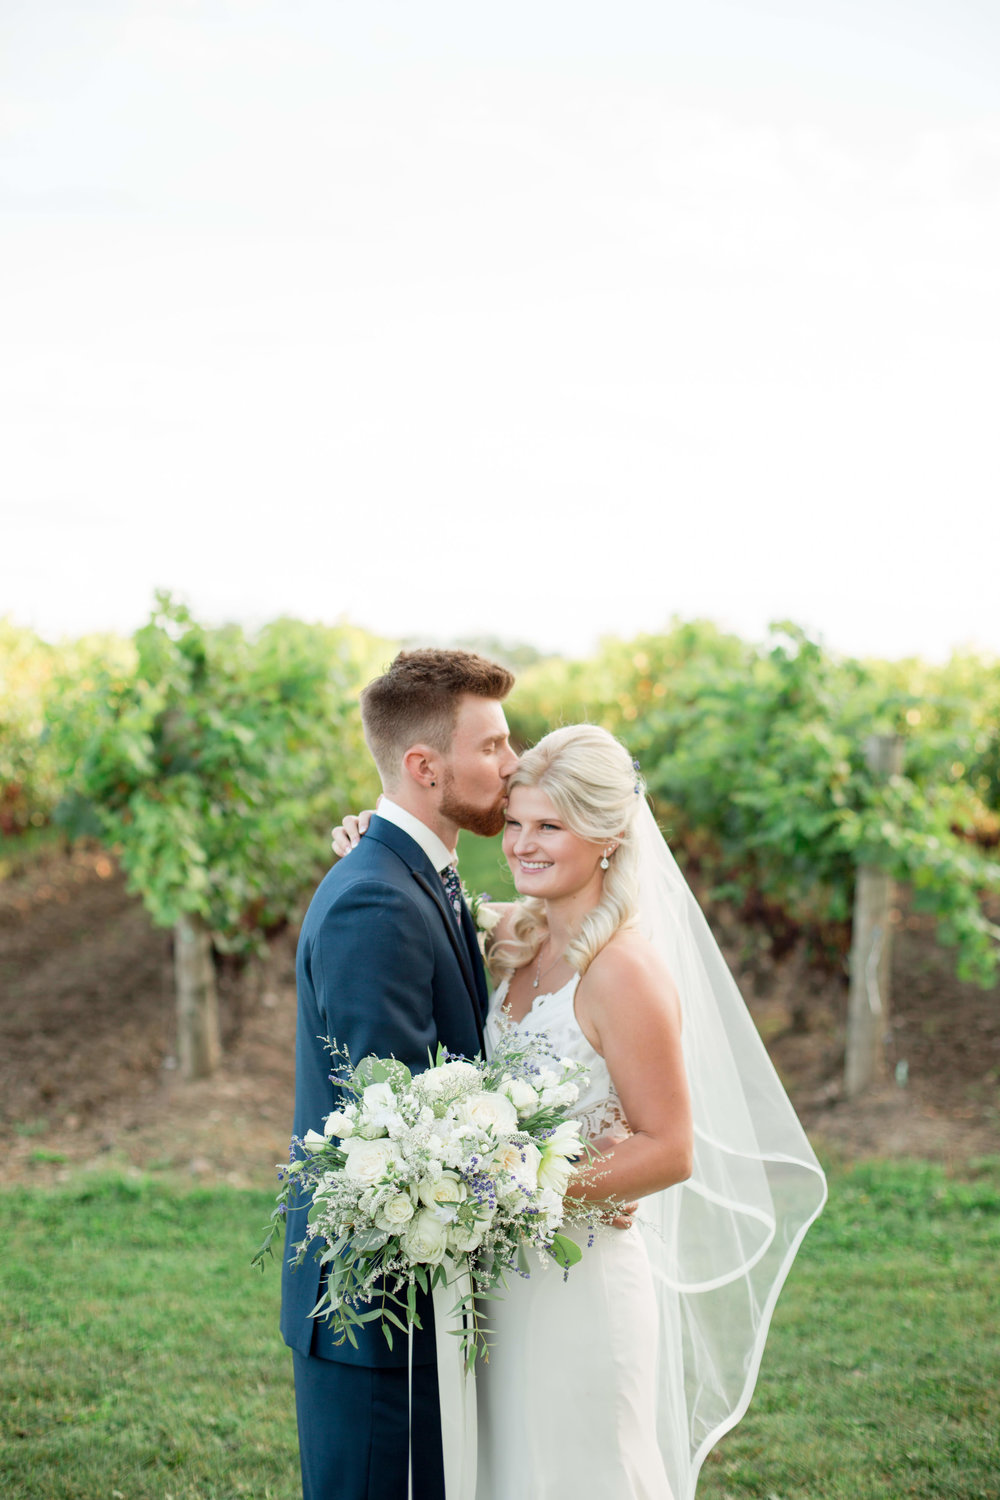 Maddy___Brandon___Daniel_Ricci_Weddings_High_Res._Finals_443.jpg